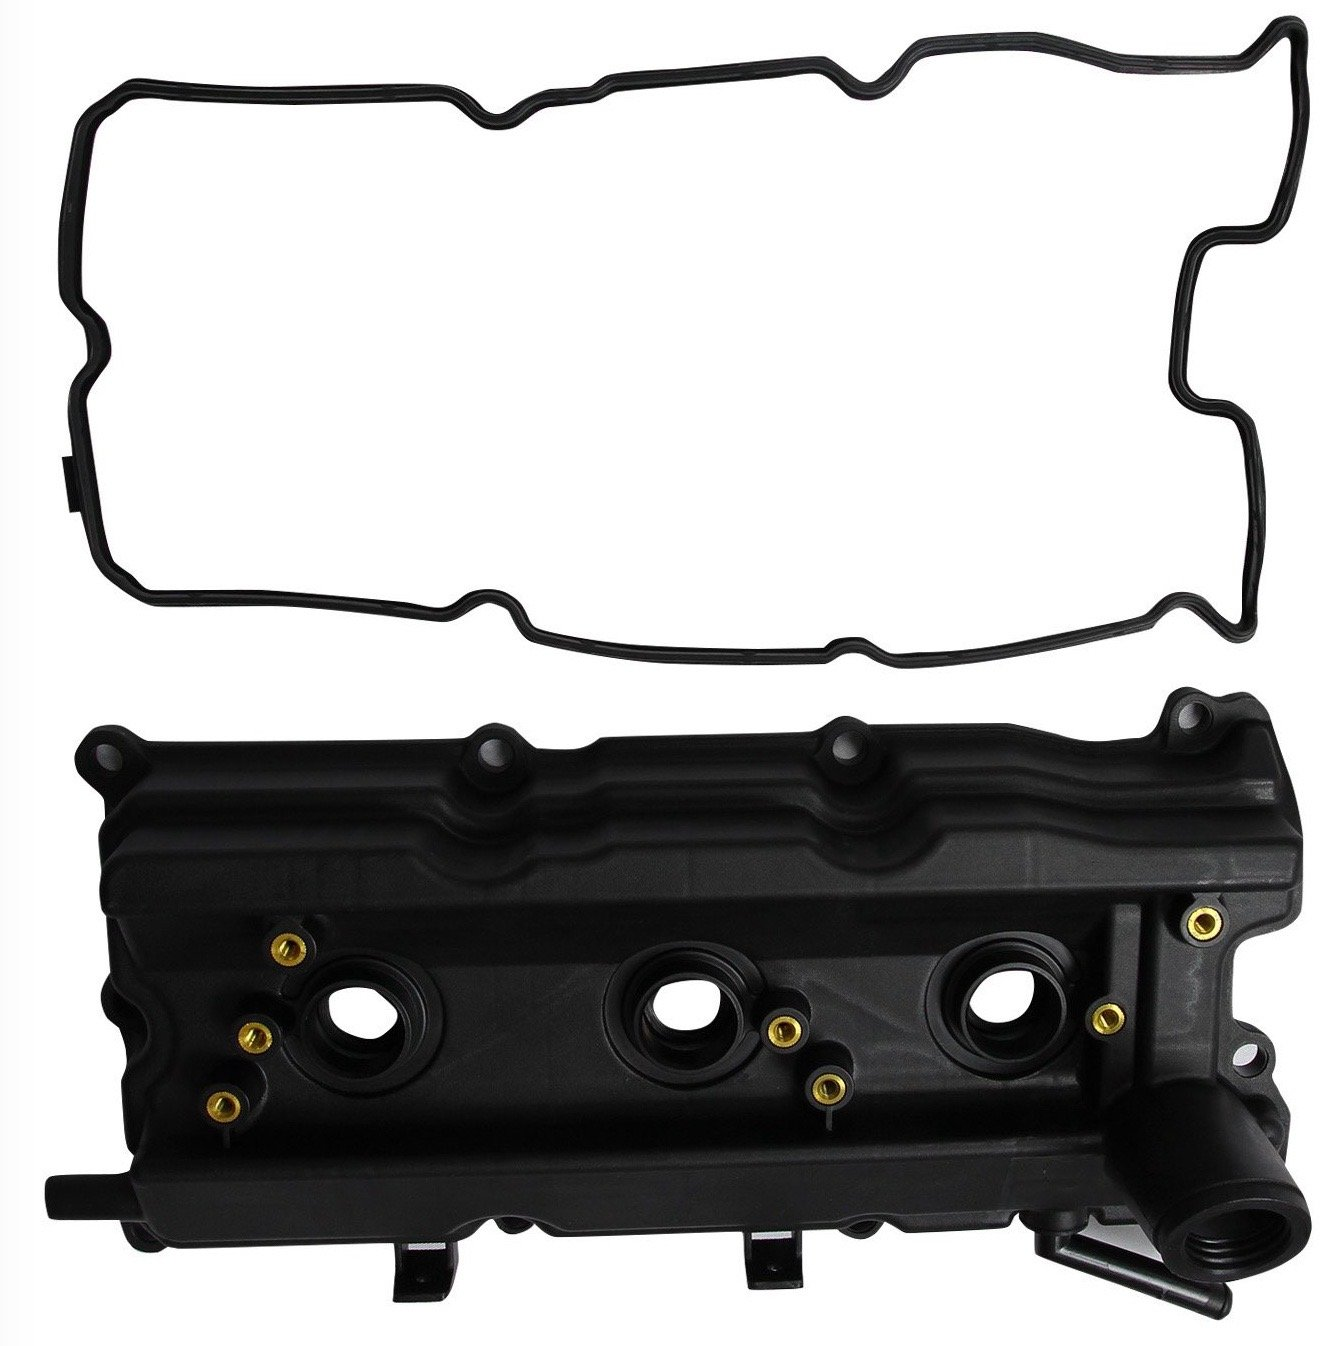 APDTY 139986 Valve Cover w/Gasket Fits Left; Front Of Engine Bay 2003-2006 Nissan 350Z 2003-2008 Infiniti FX35 FX45 2003-2007 G35 2006-2009 M35 (Oil-Fill Side; Replaces 13264-AM610, 13264AM610)